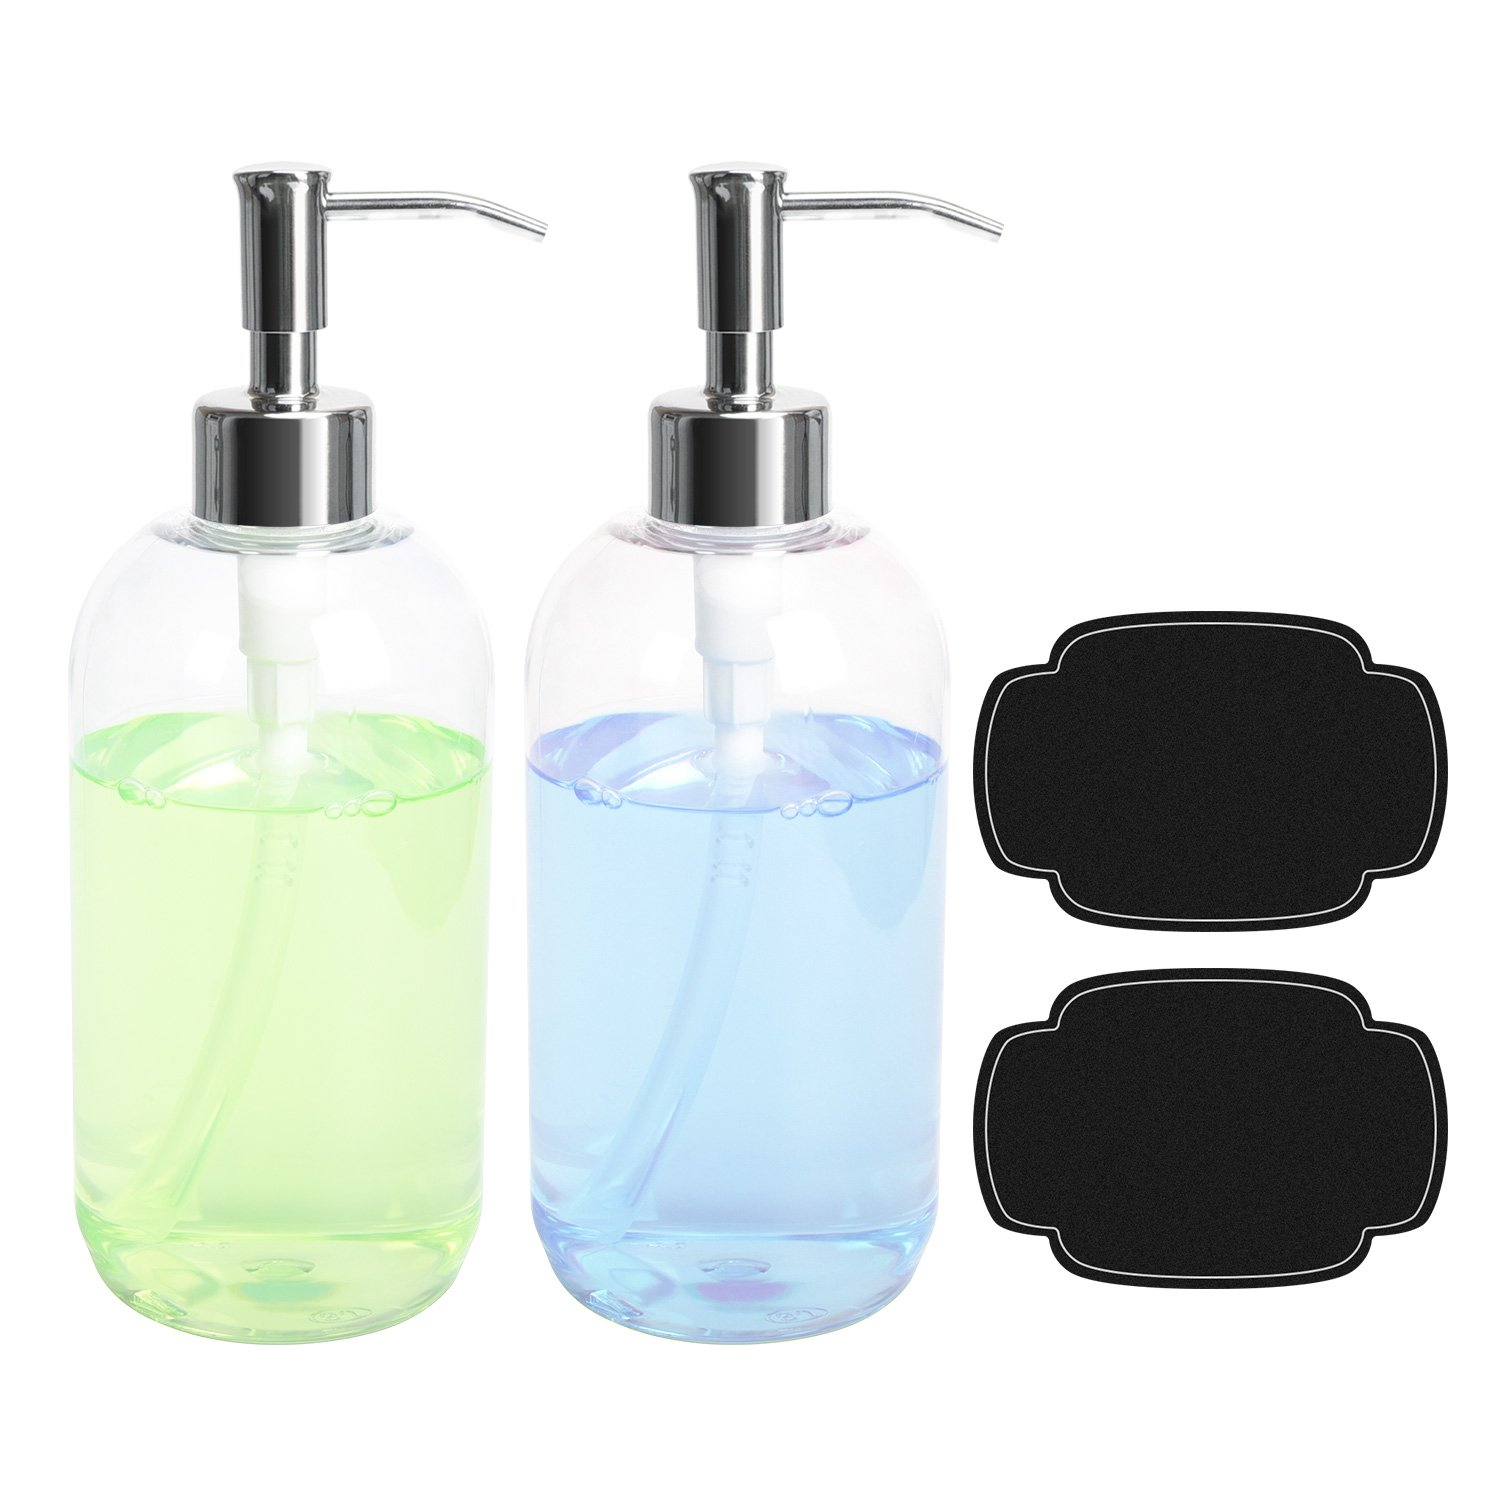 Amazon 2 Pack 16 oz Liquid Soap Dispenser with Stainless